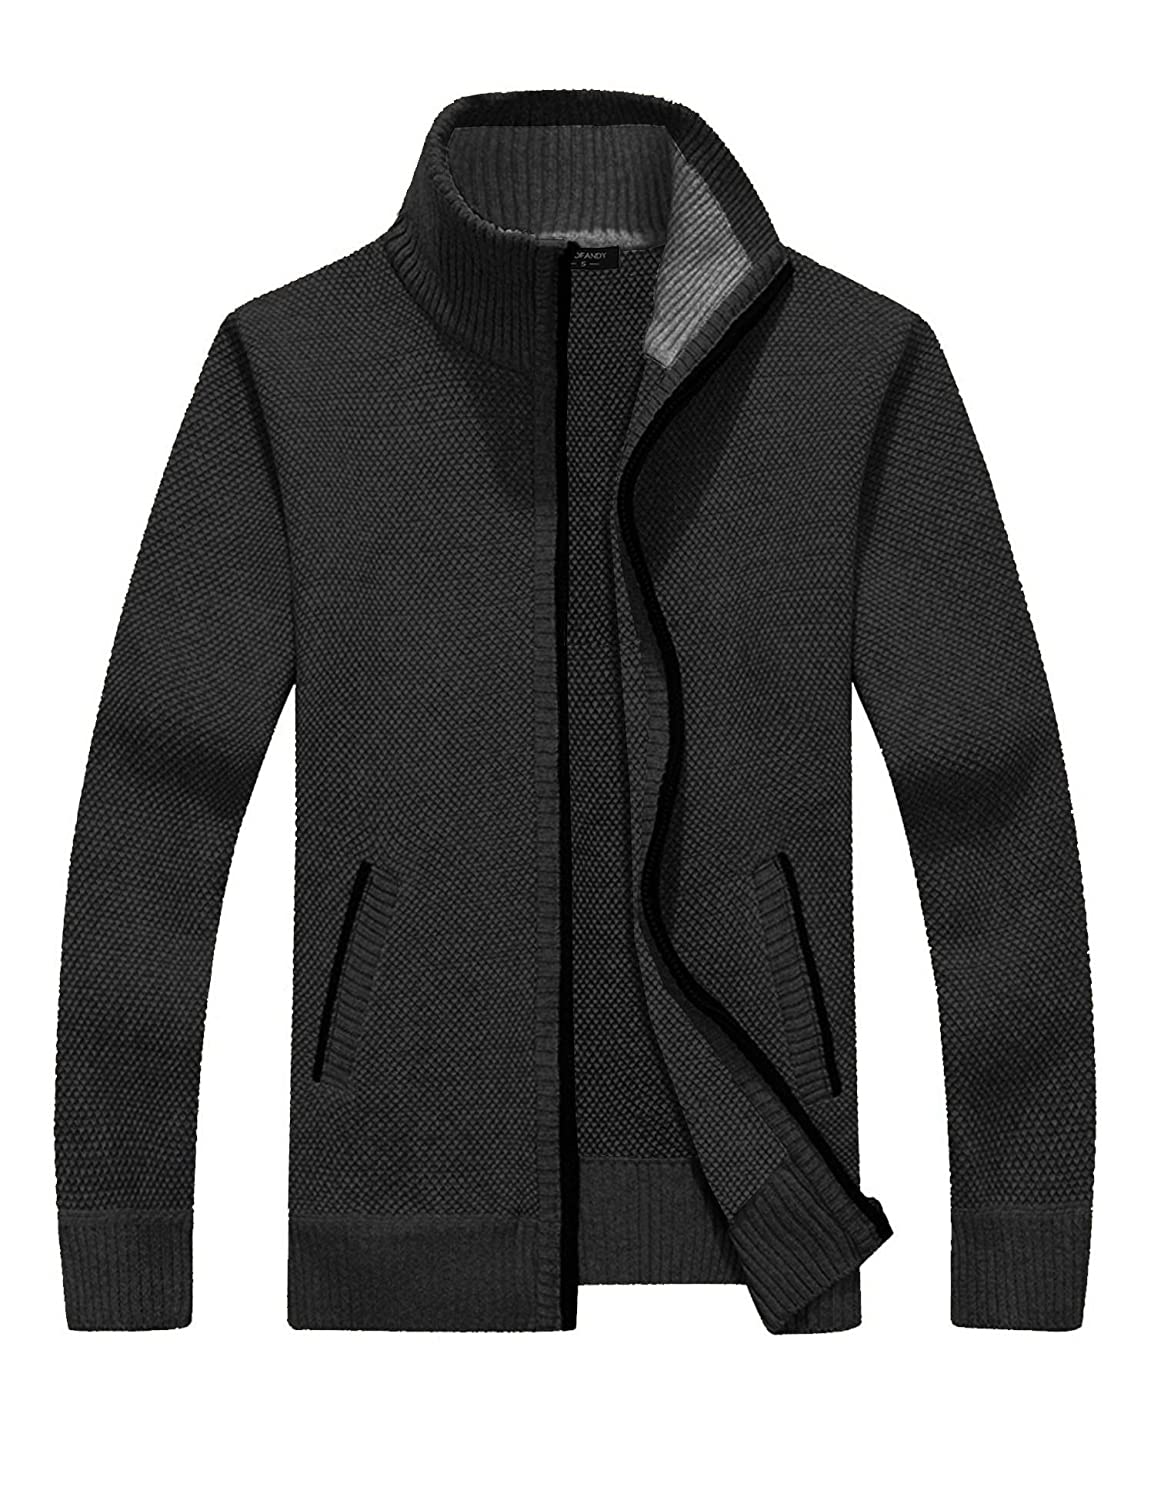 51123511fd127 COOFANDY Mens Full Zip Up Sweaters Lightweight Casual Slim Fit Cardigan  with Pockets at Amazon Men s Clothing store